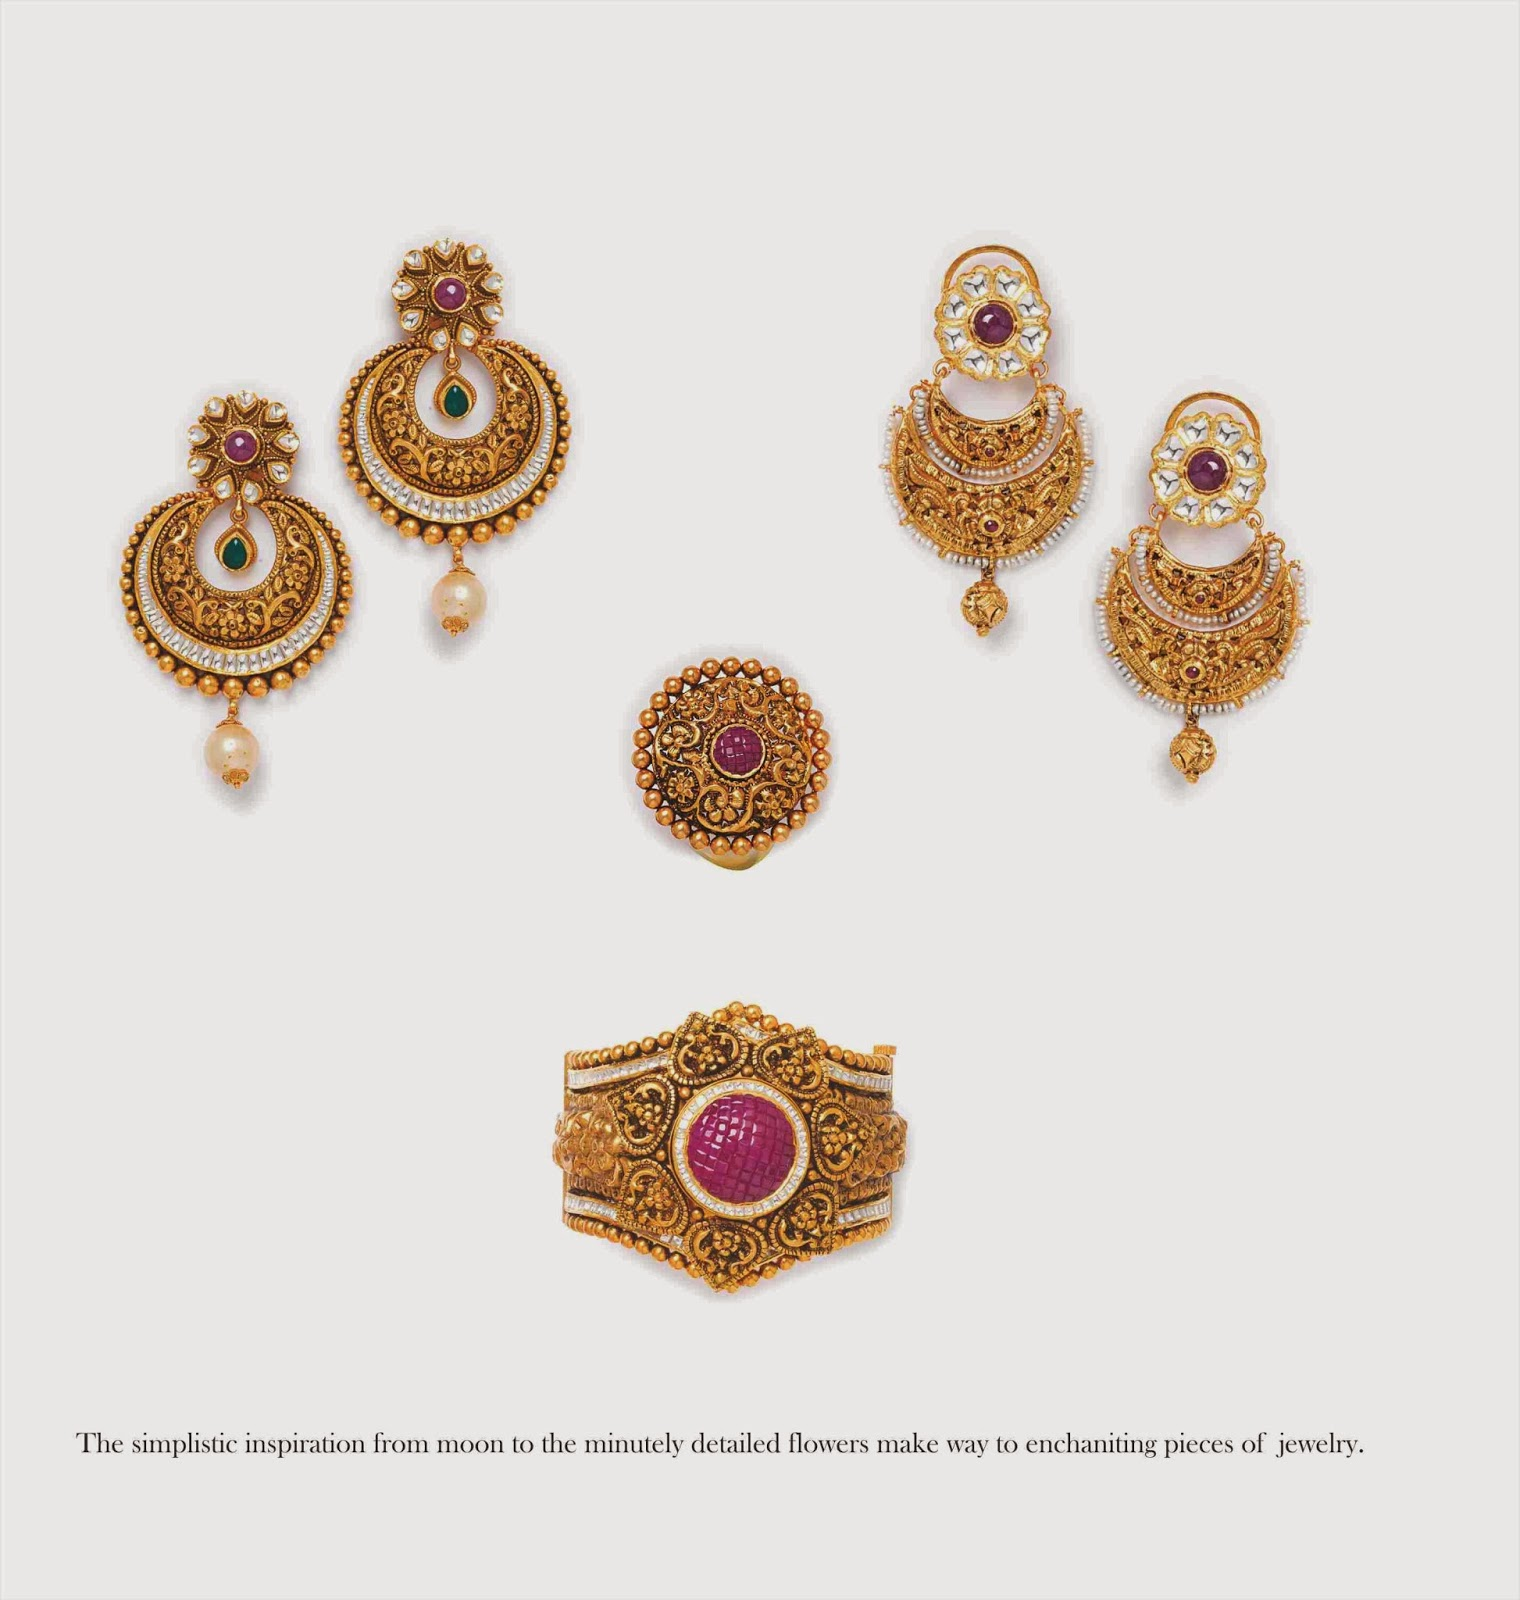 luxury goods and jewellery in india essay